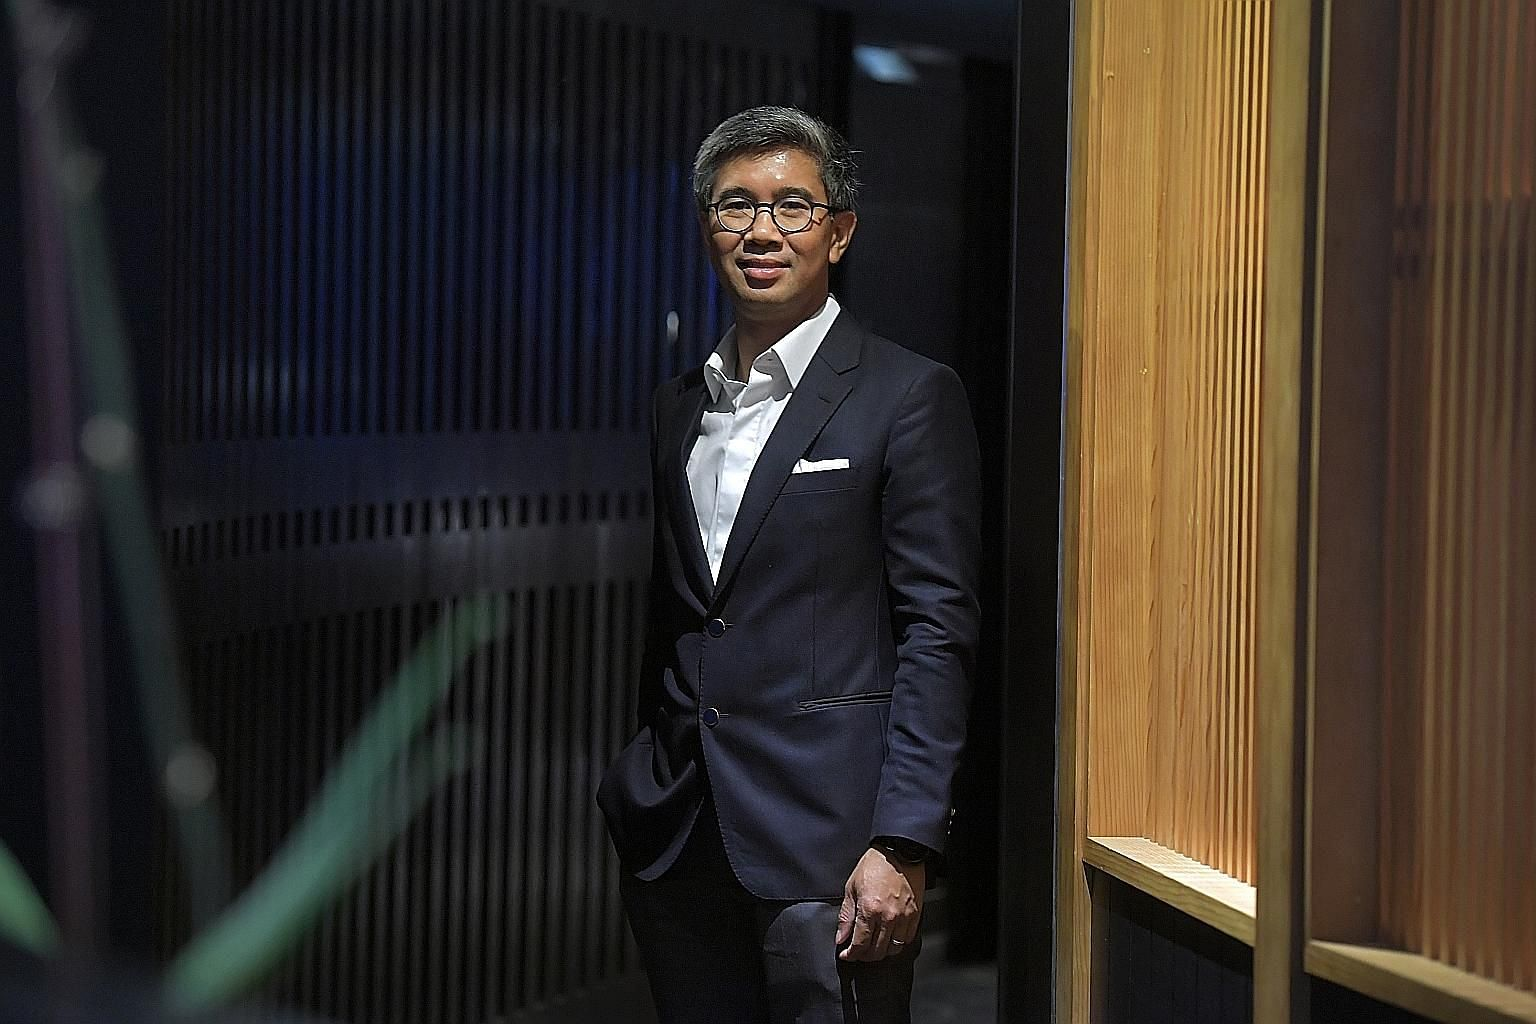 Tengku Zafrul Aziz, who is CEO of both CIMB Bank and the wider group, says his current spare-time addiction is running. Last year, he ran the Tokyo Marathon and a few months ago, the Boston Marathon. He runs between 30km and 40km a week.